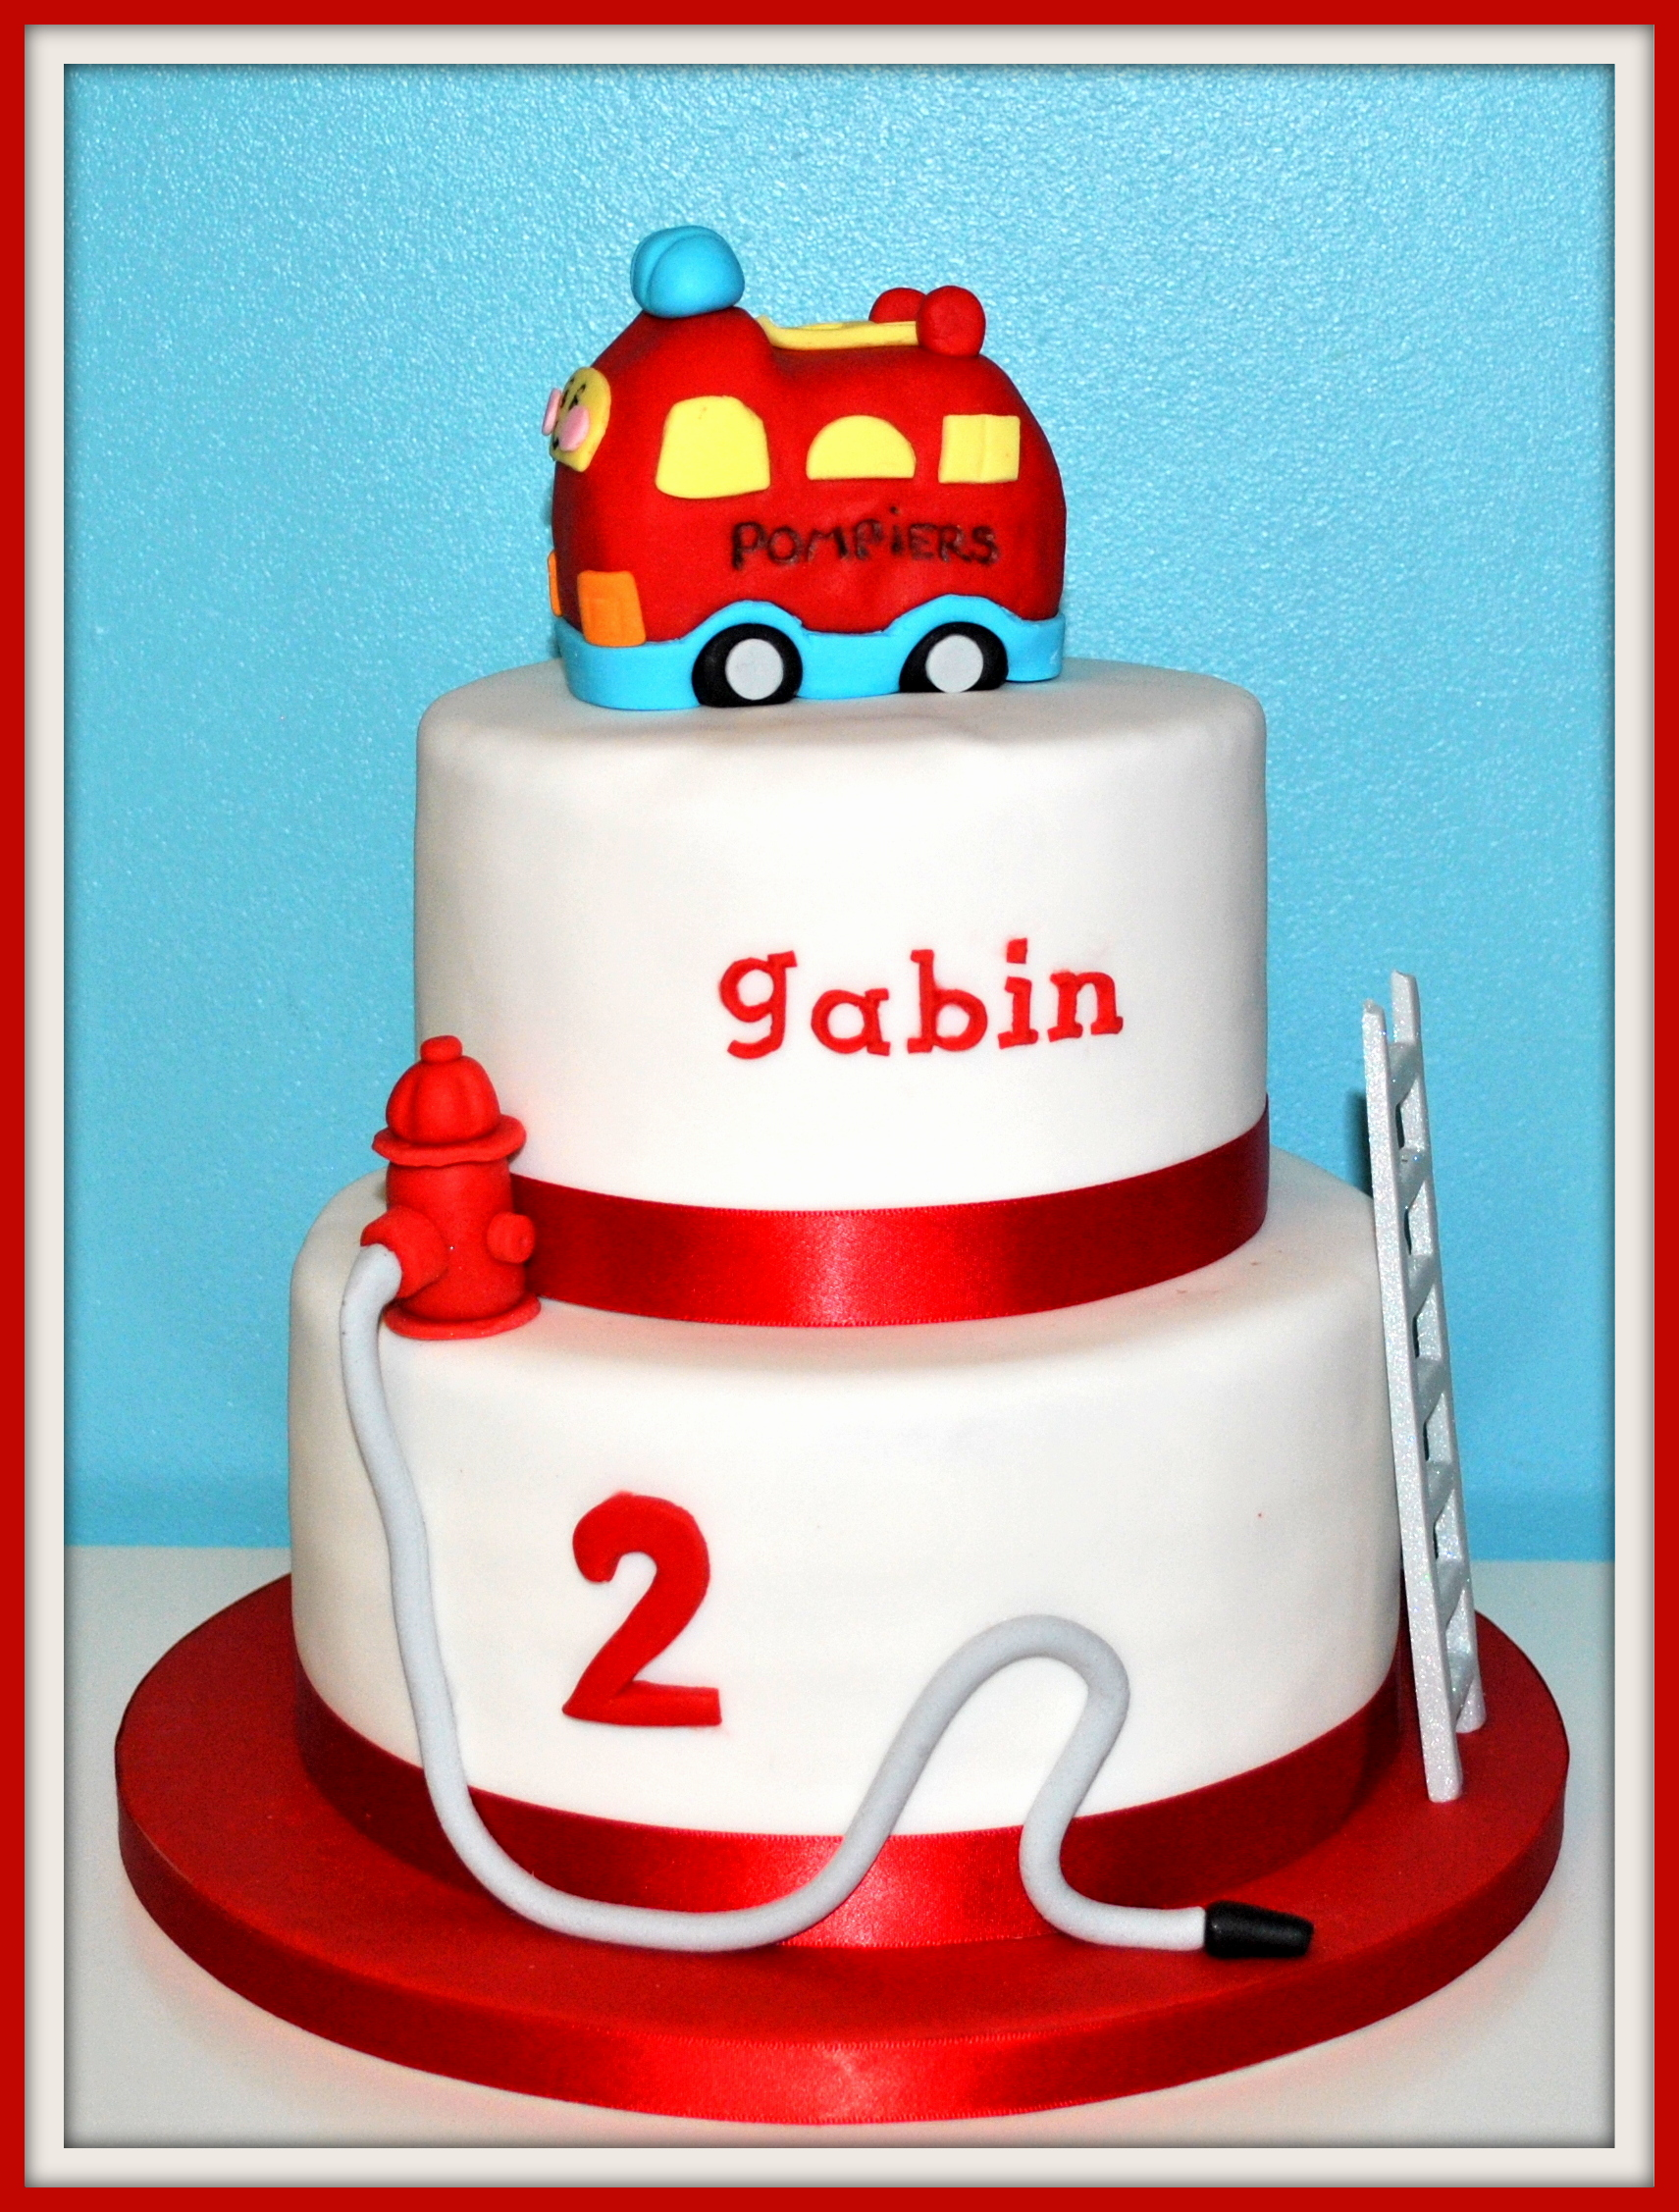 Cake Design Formation Toulouse : Cake Design - Toulouse Gateau pompier